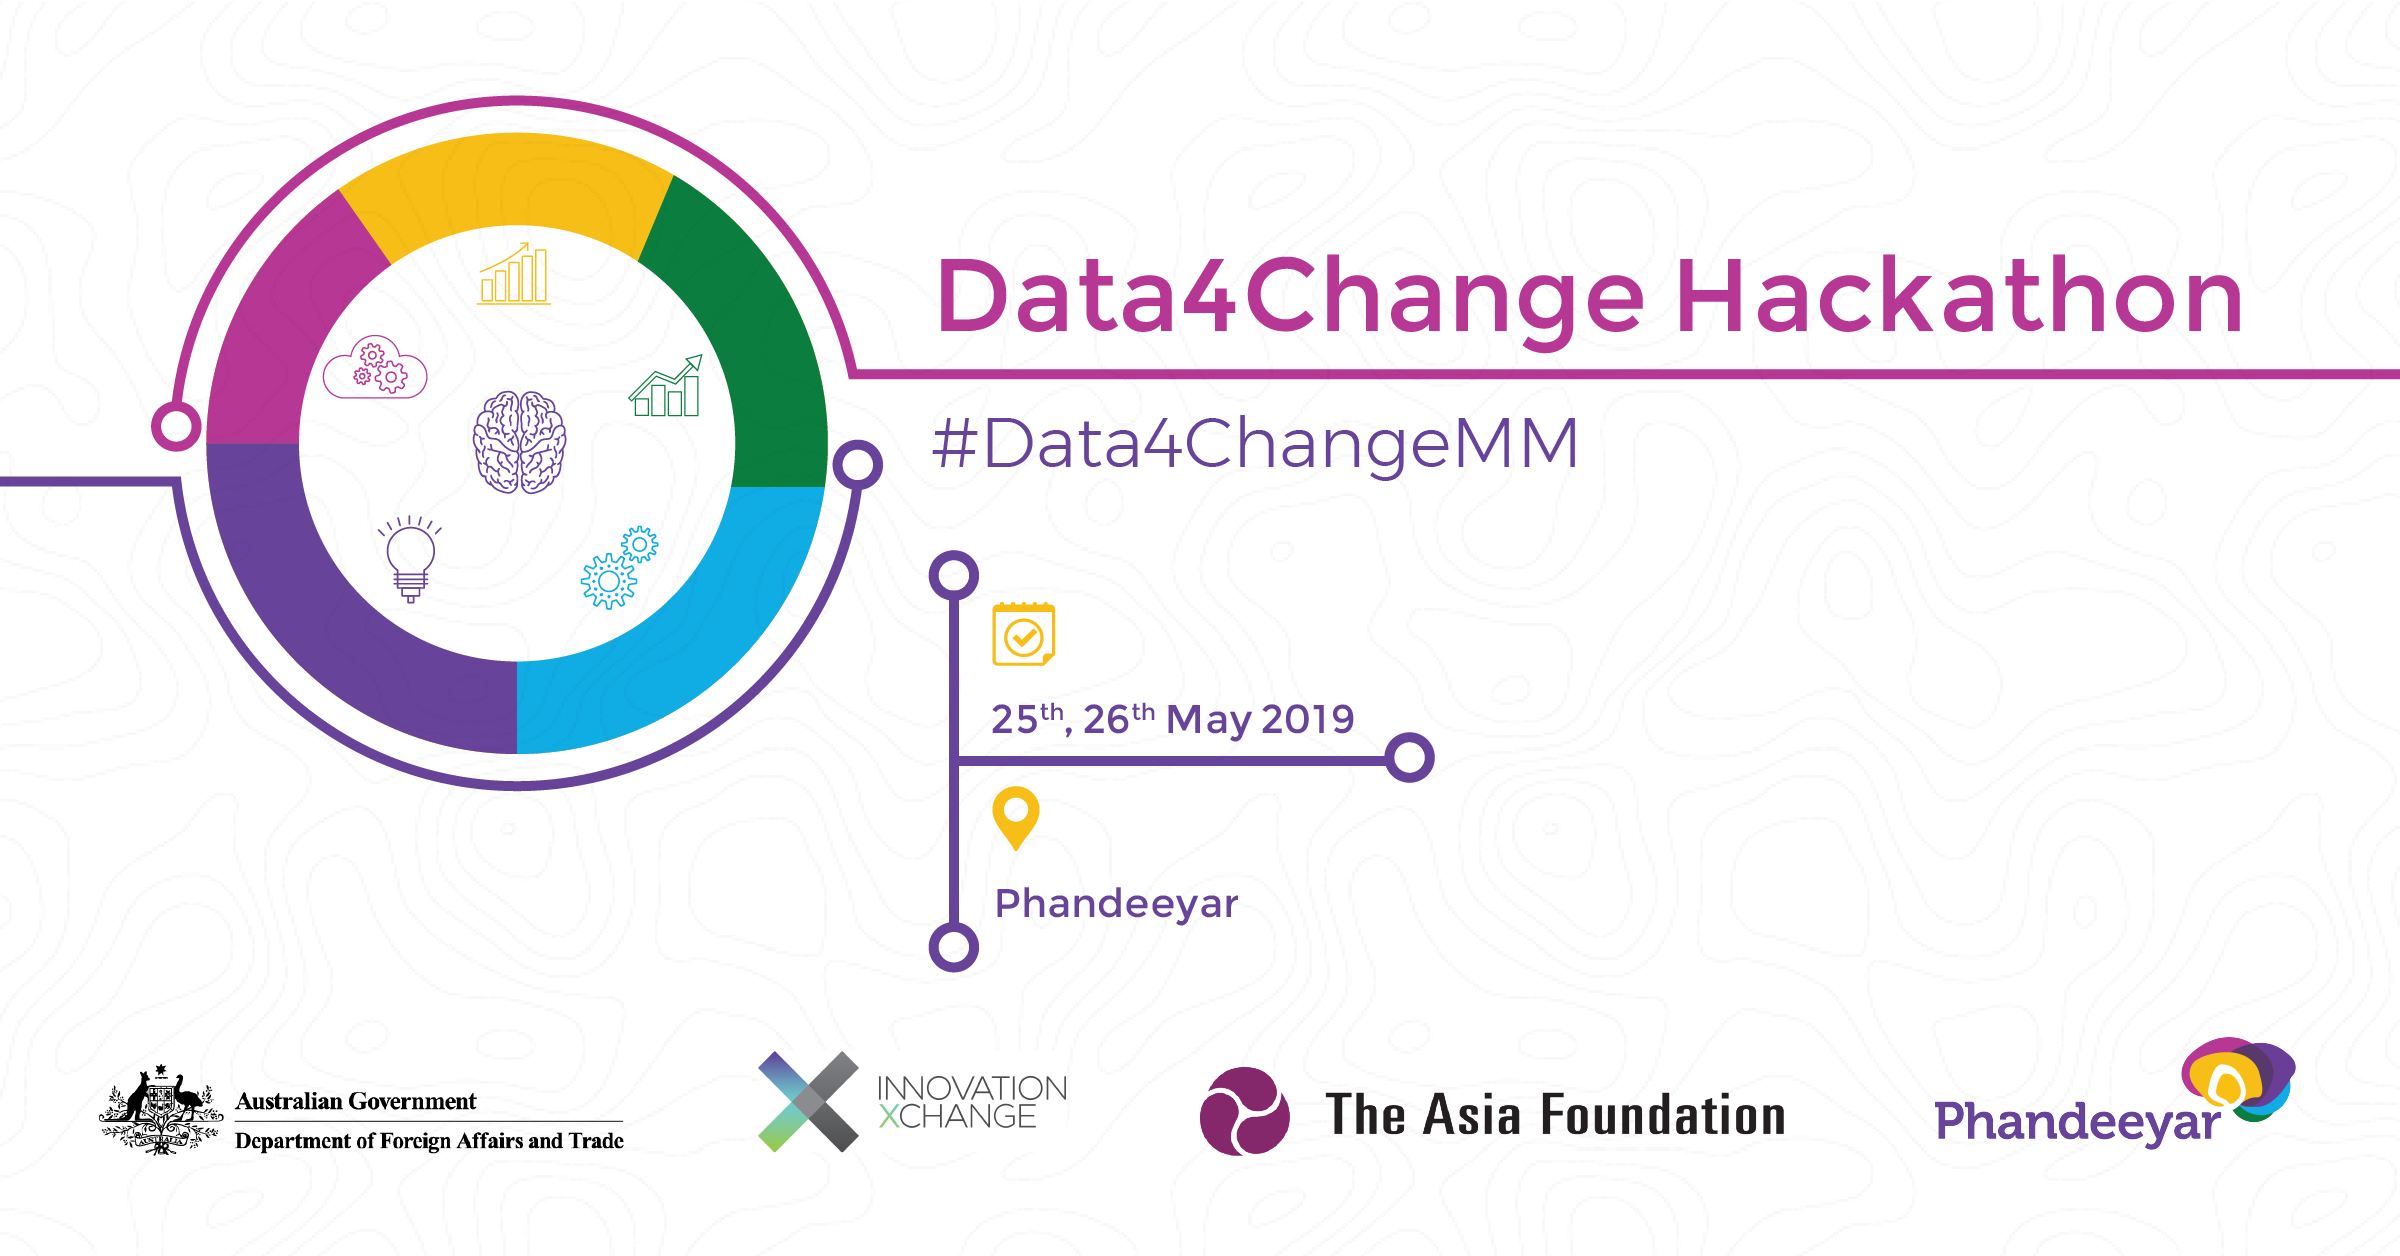 Data4Change Hackathon